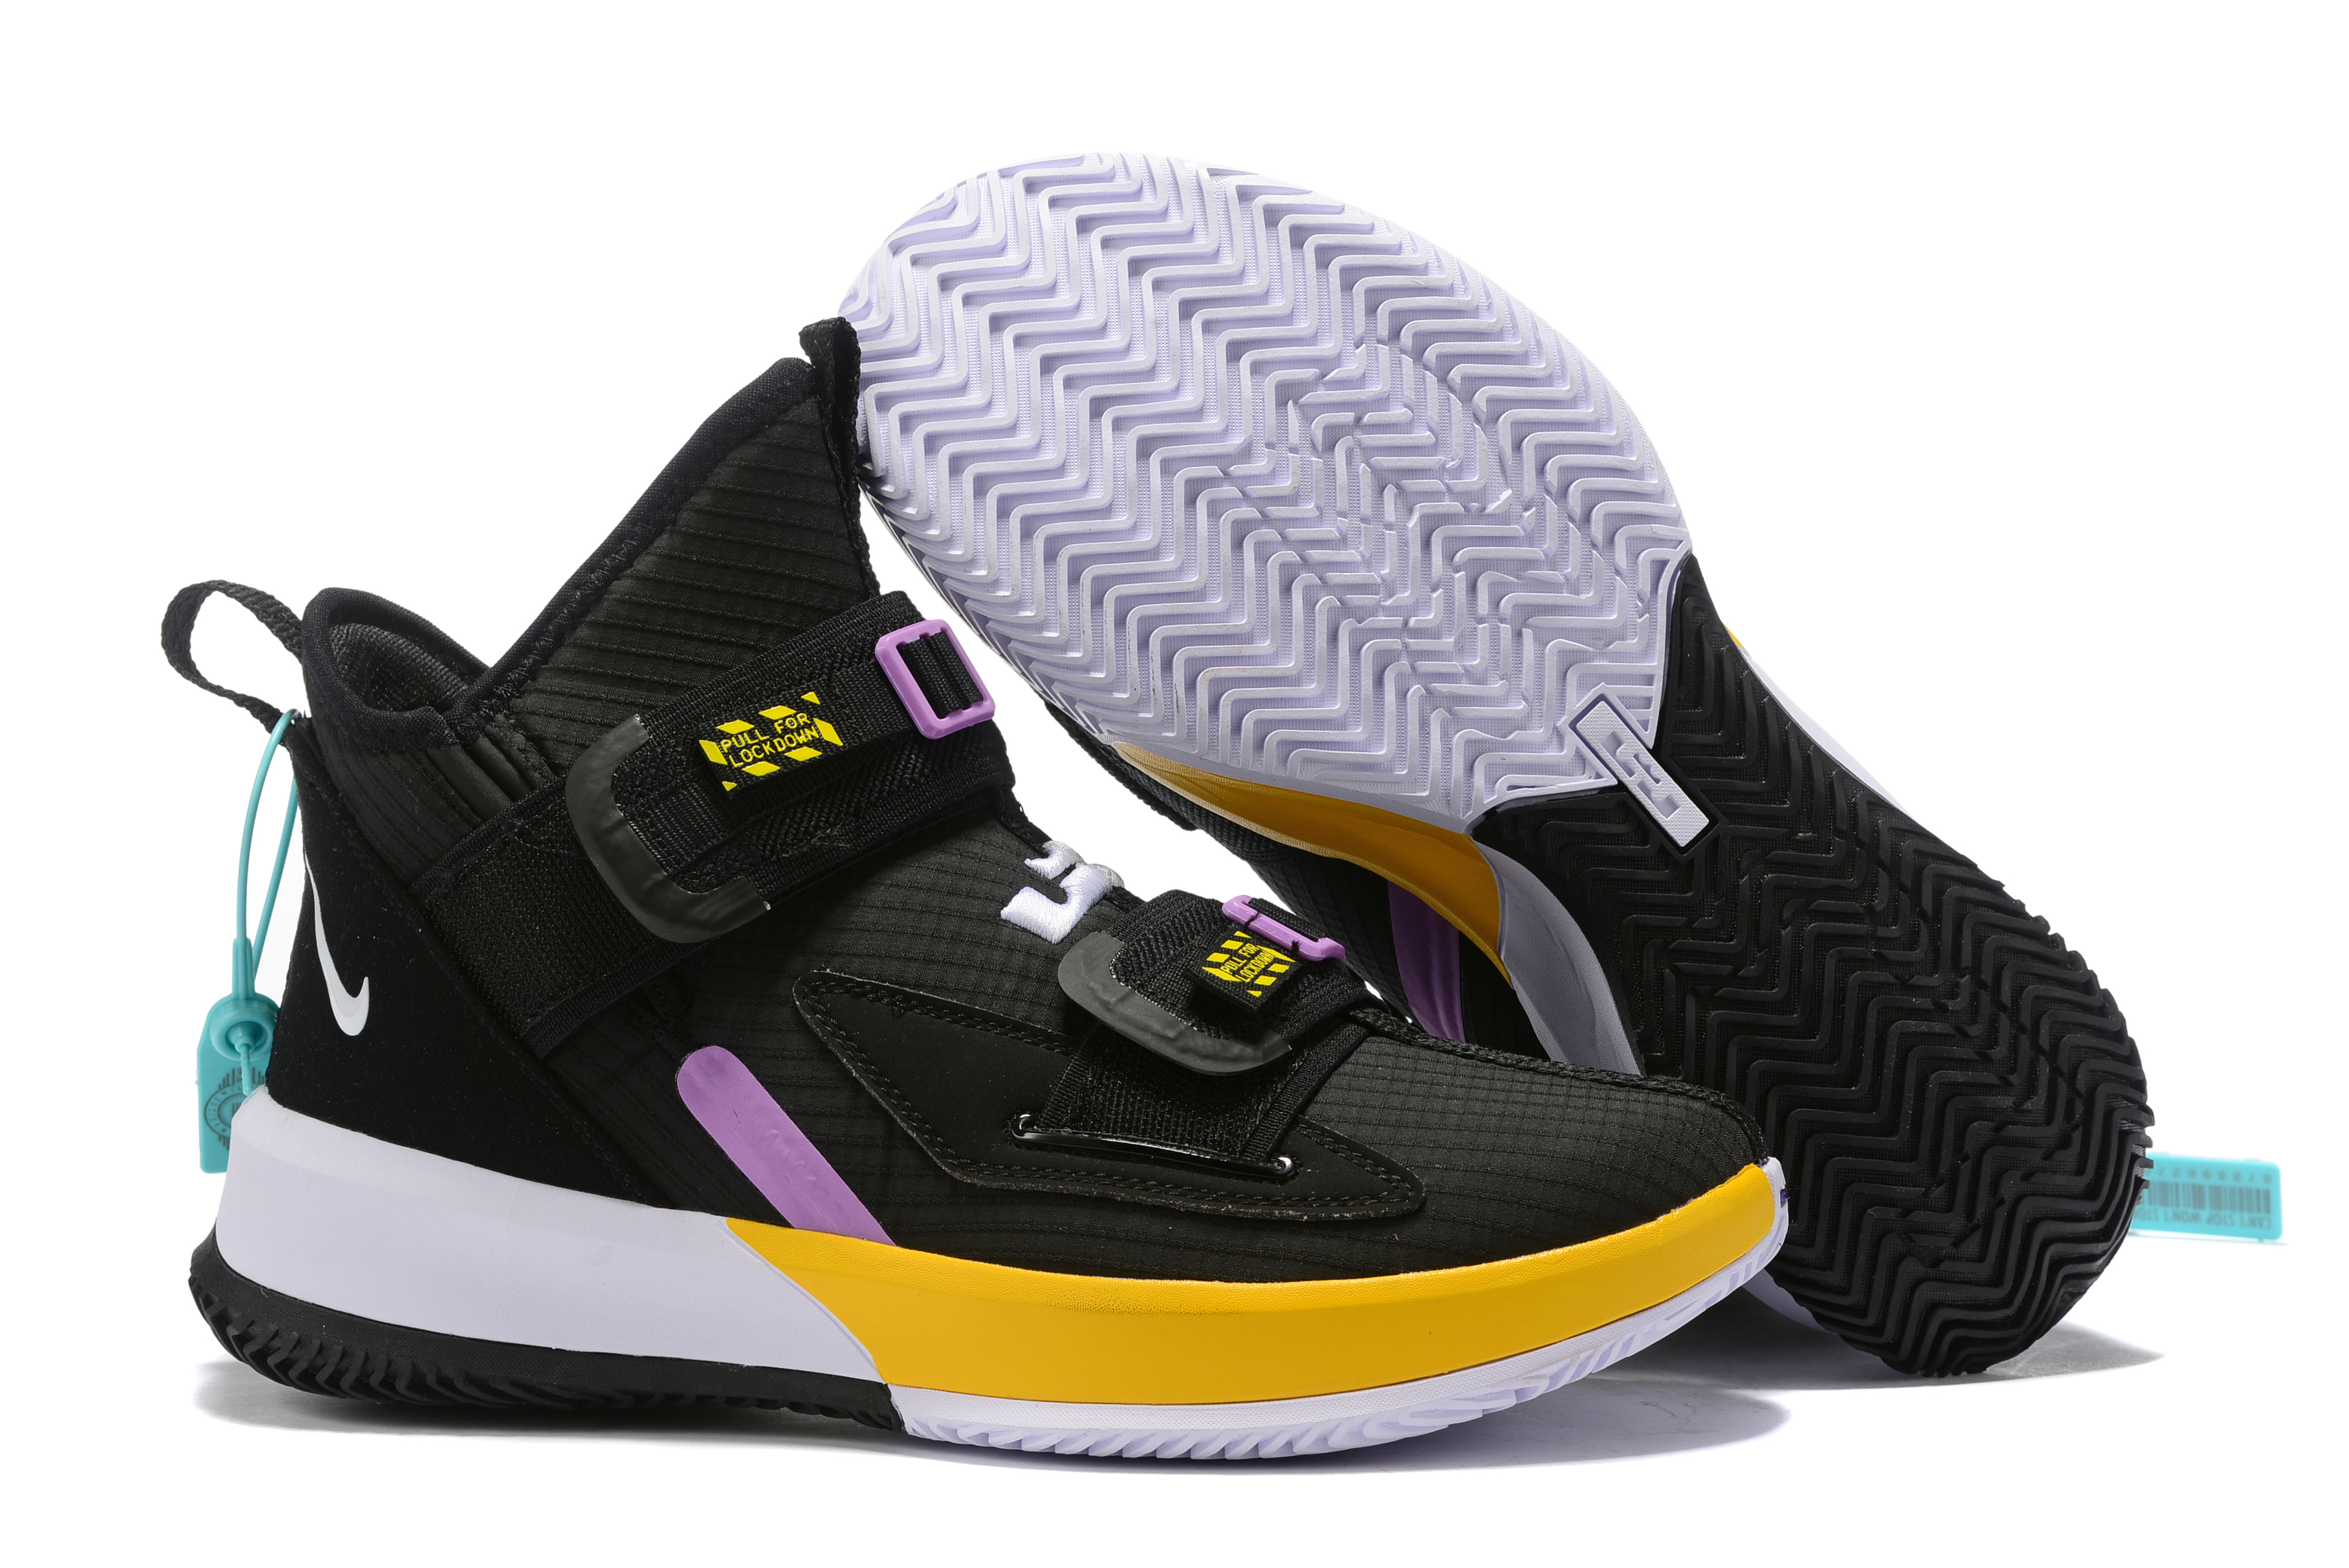 Nike Lebron Solider 13 Black Yellow Purple Shoes